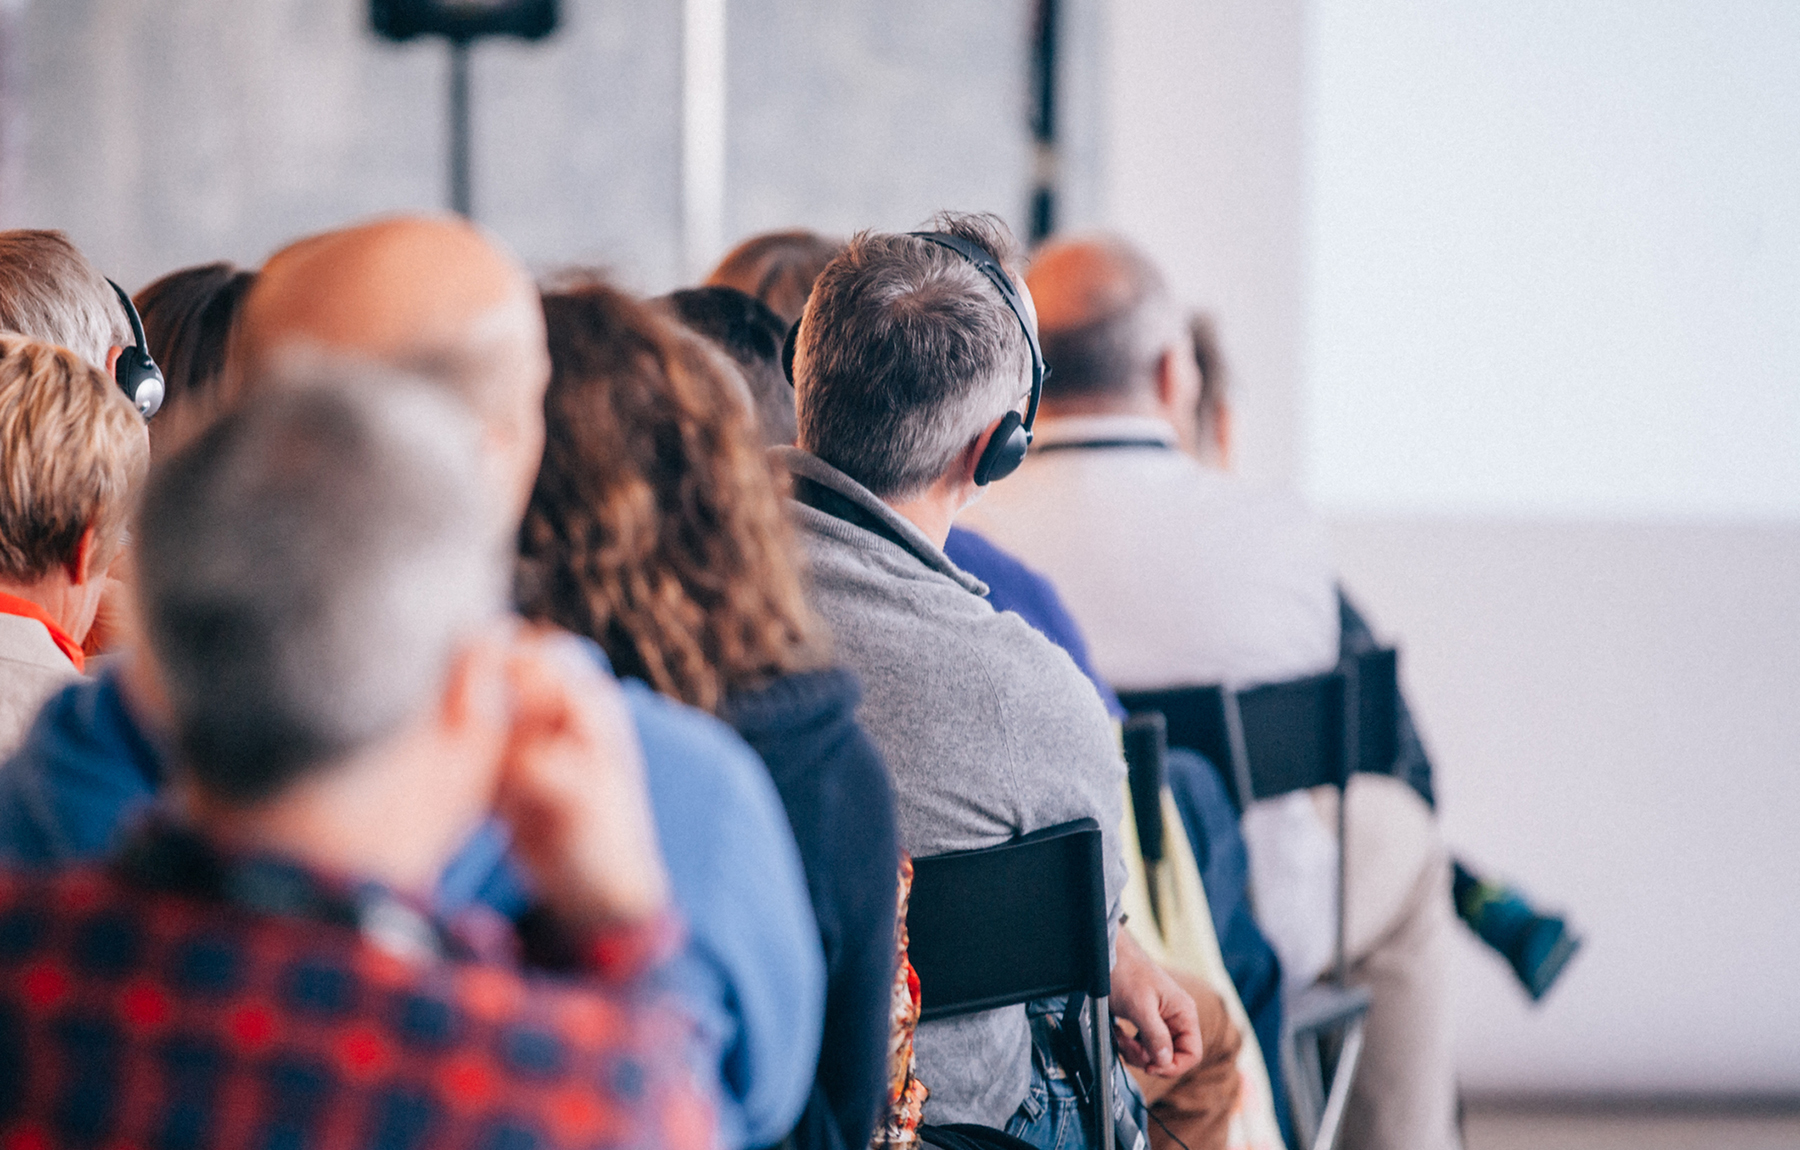 The #1 Thing That Makes Attending a Conference so Valuable